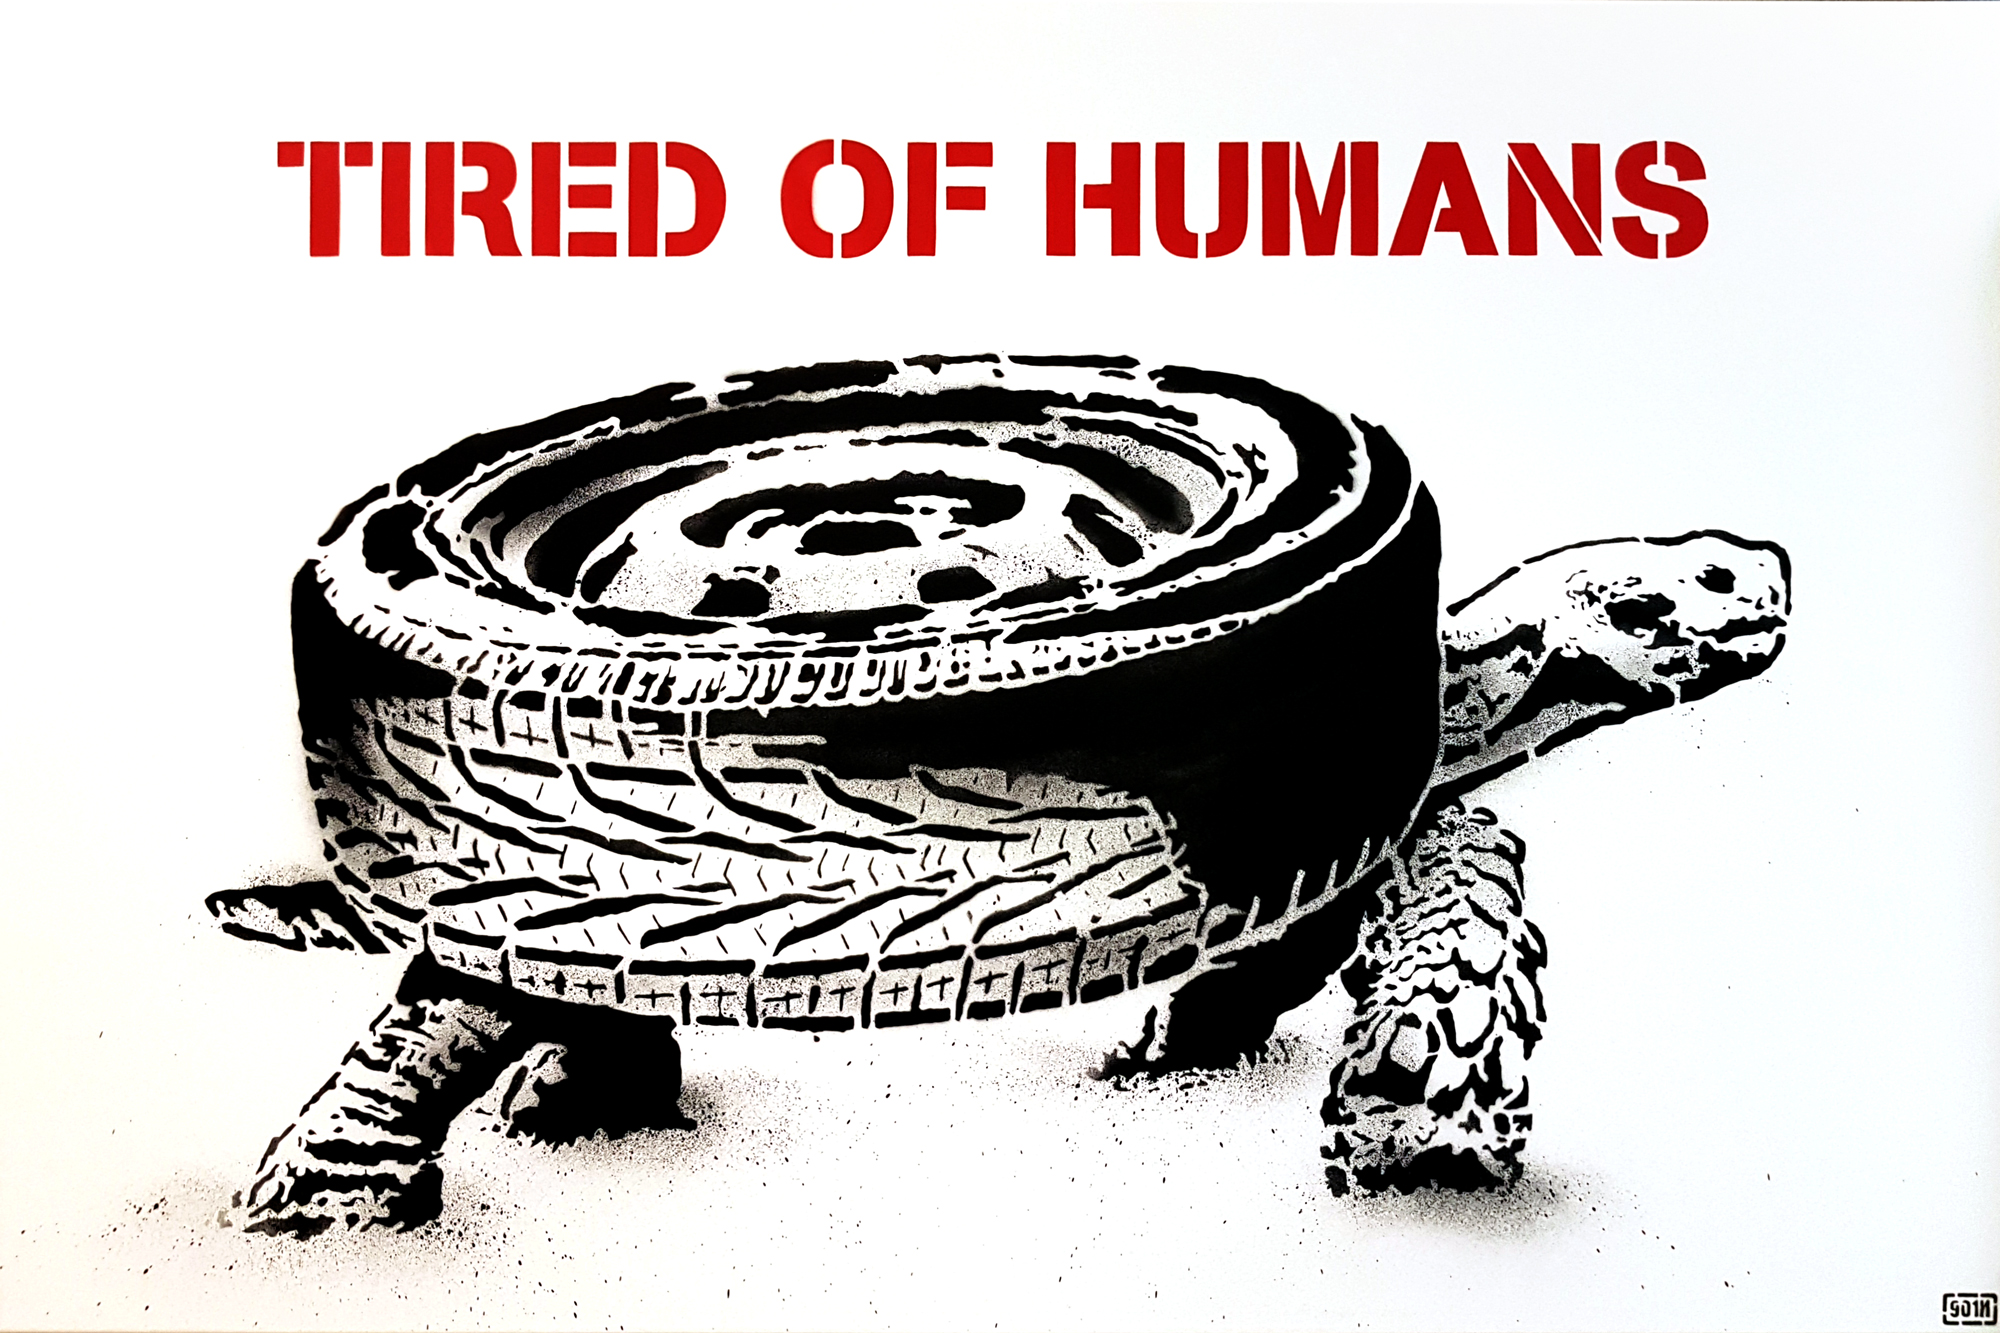 Tired of Humans